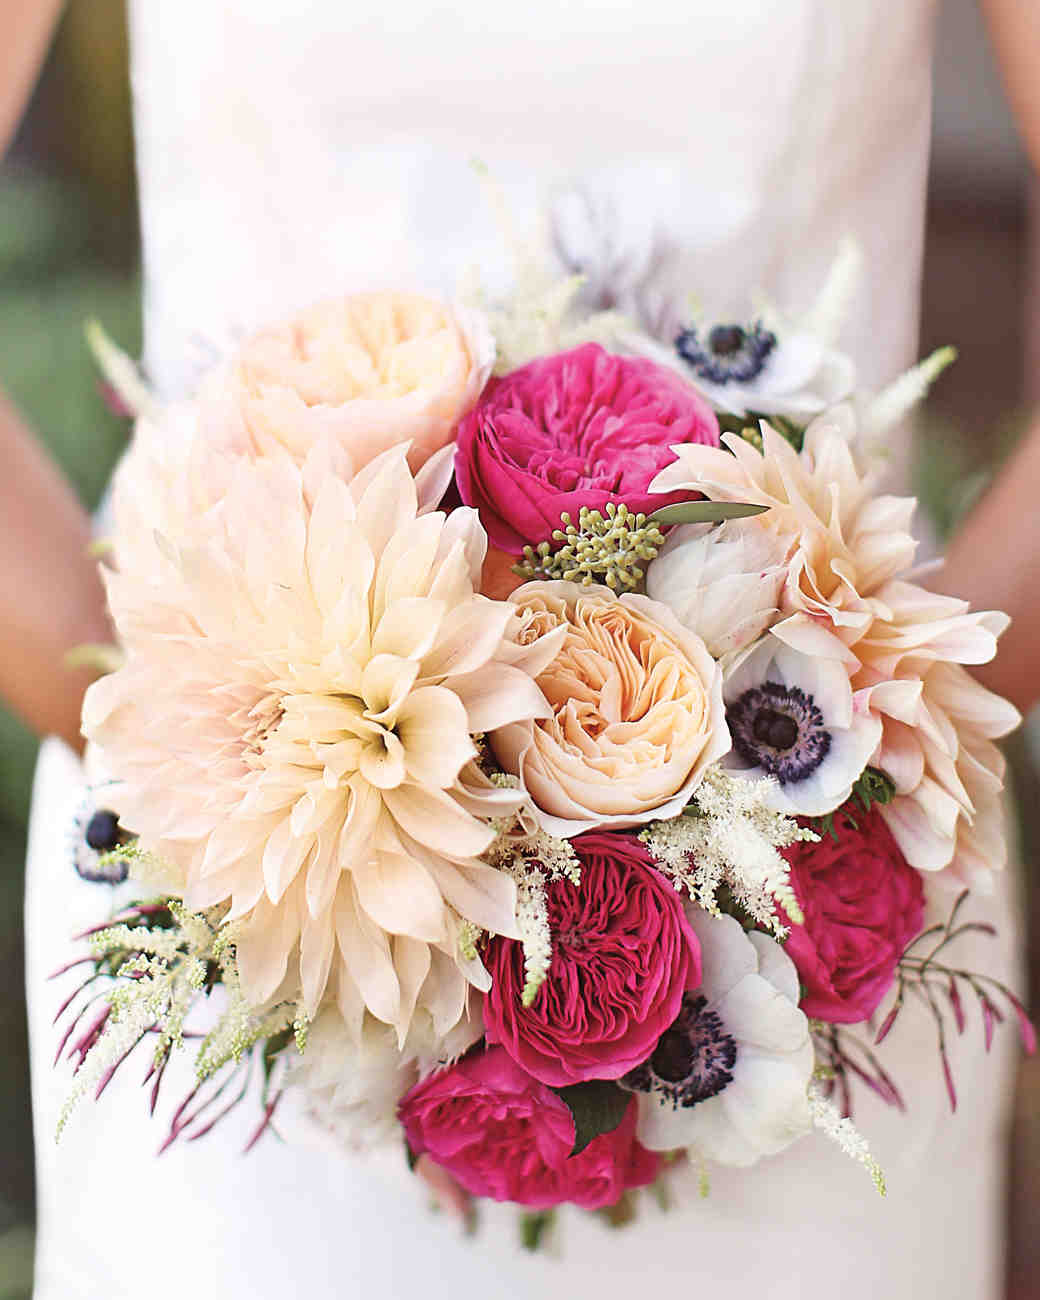 Find the Best Flower for Your Wedding Color Palette | Martha Stewart ...